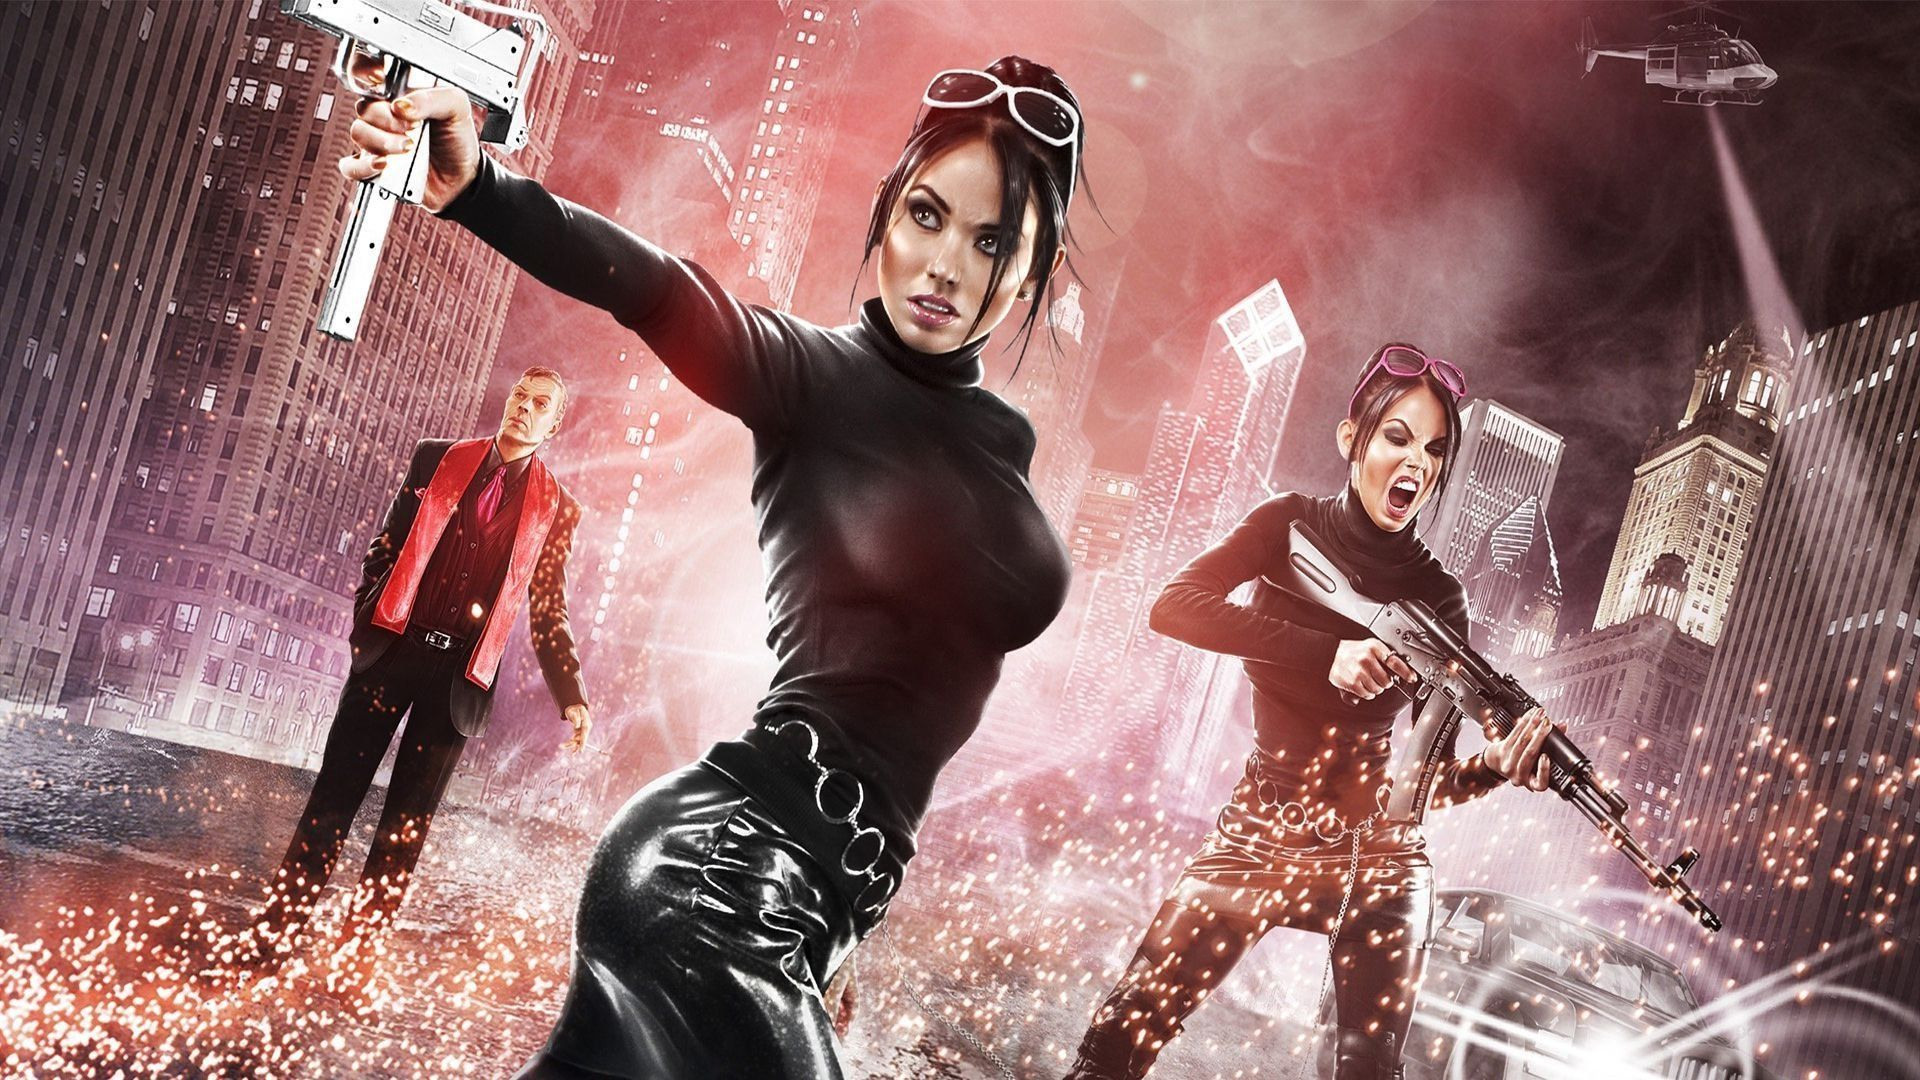 Image Result For Saints Row Dewynter With Images Saints Row